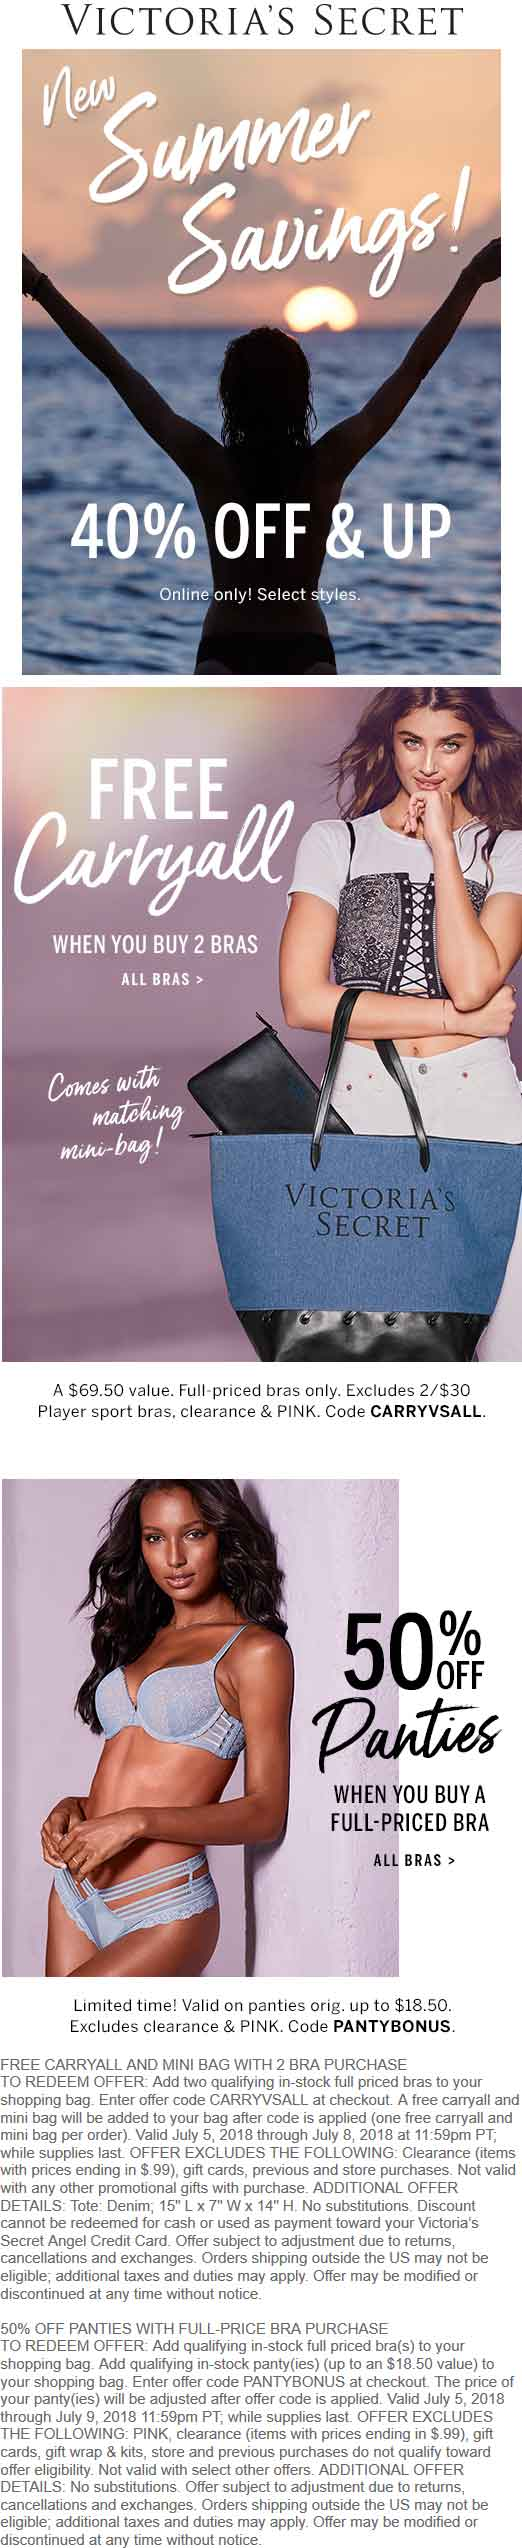 Victorias Secret Coupon December 2018 Free $70 carryall with your bras at Victorias Secret, or online via promo code CARRYVSALL